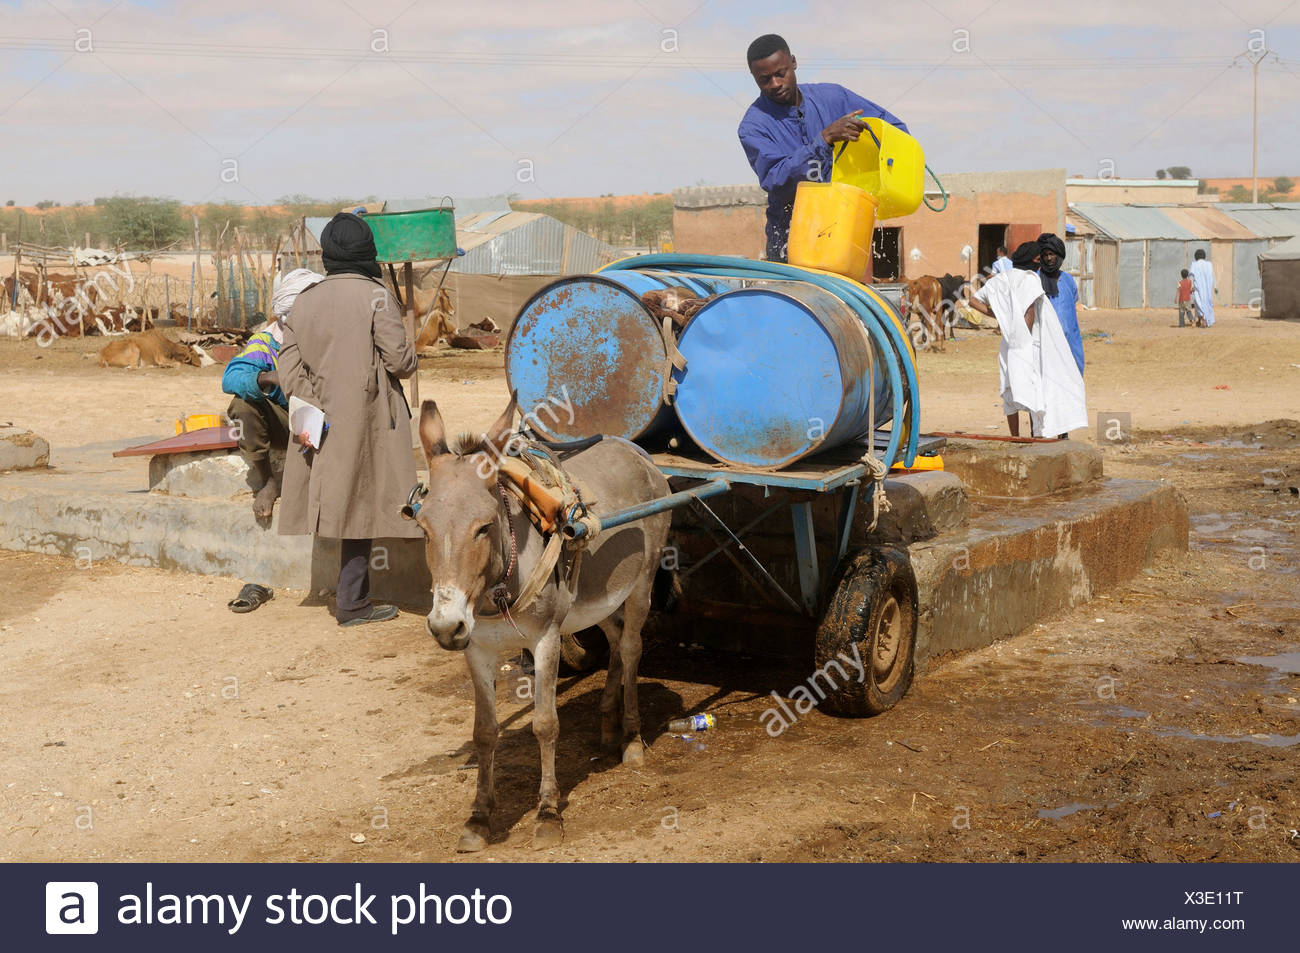 Man filling water into water containers on top of a donkey cart, Nouakchott, Mauritania, northwestern Africa - Stock Image